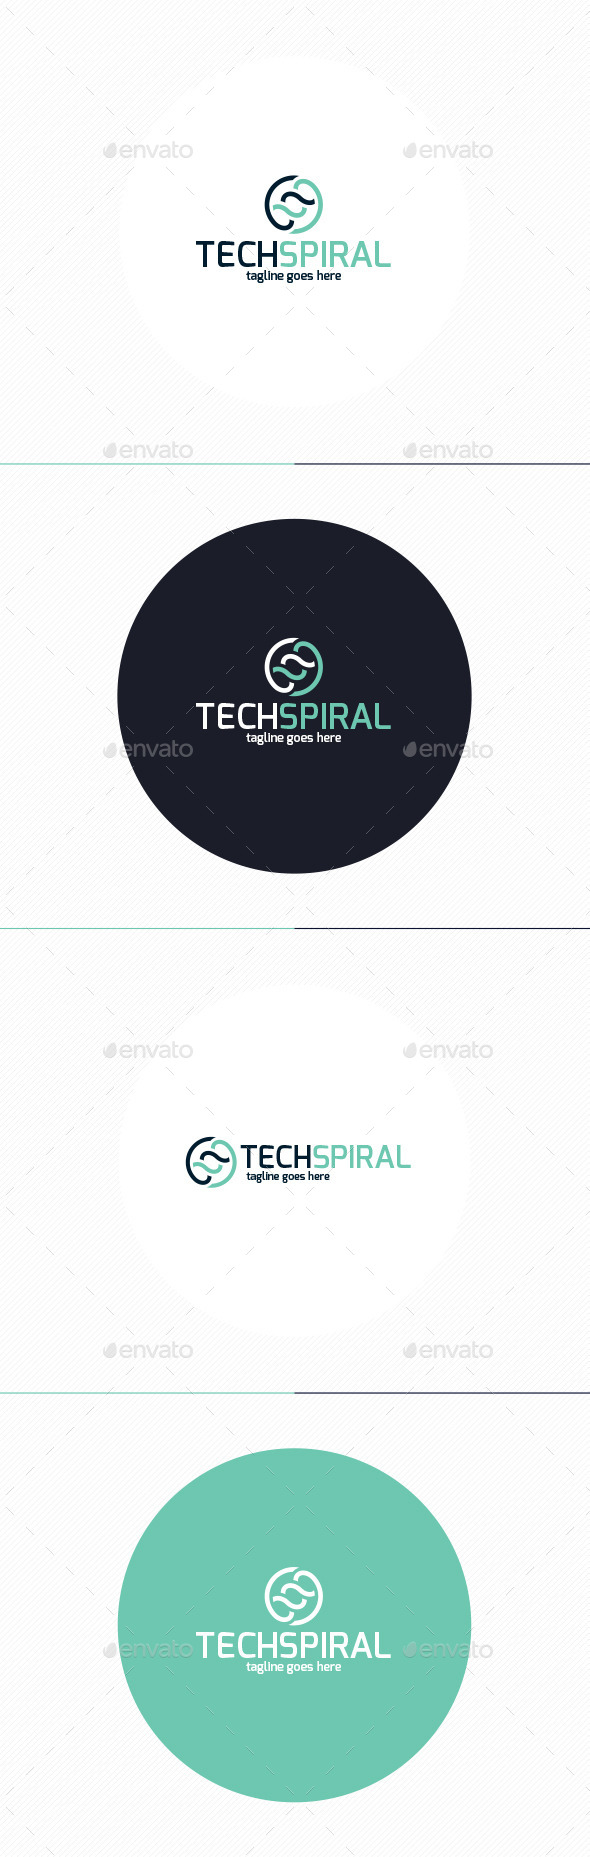 Tech Spiral Logo - Vector Abstract